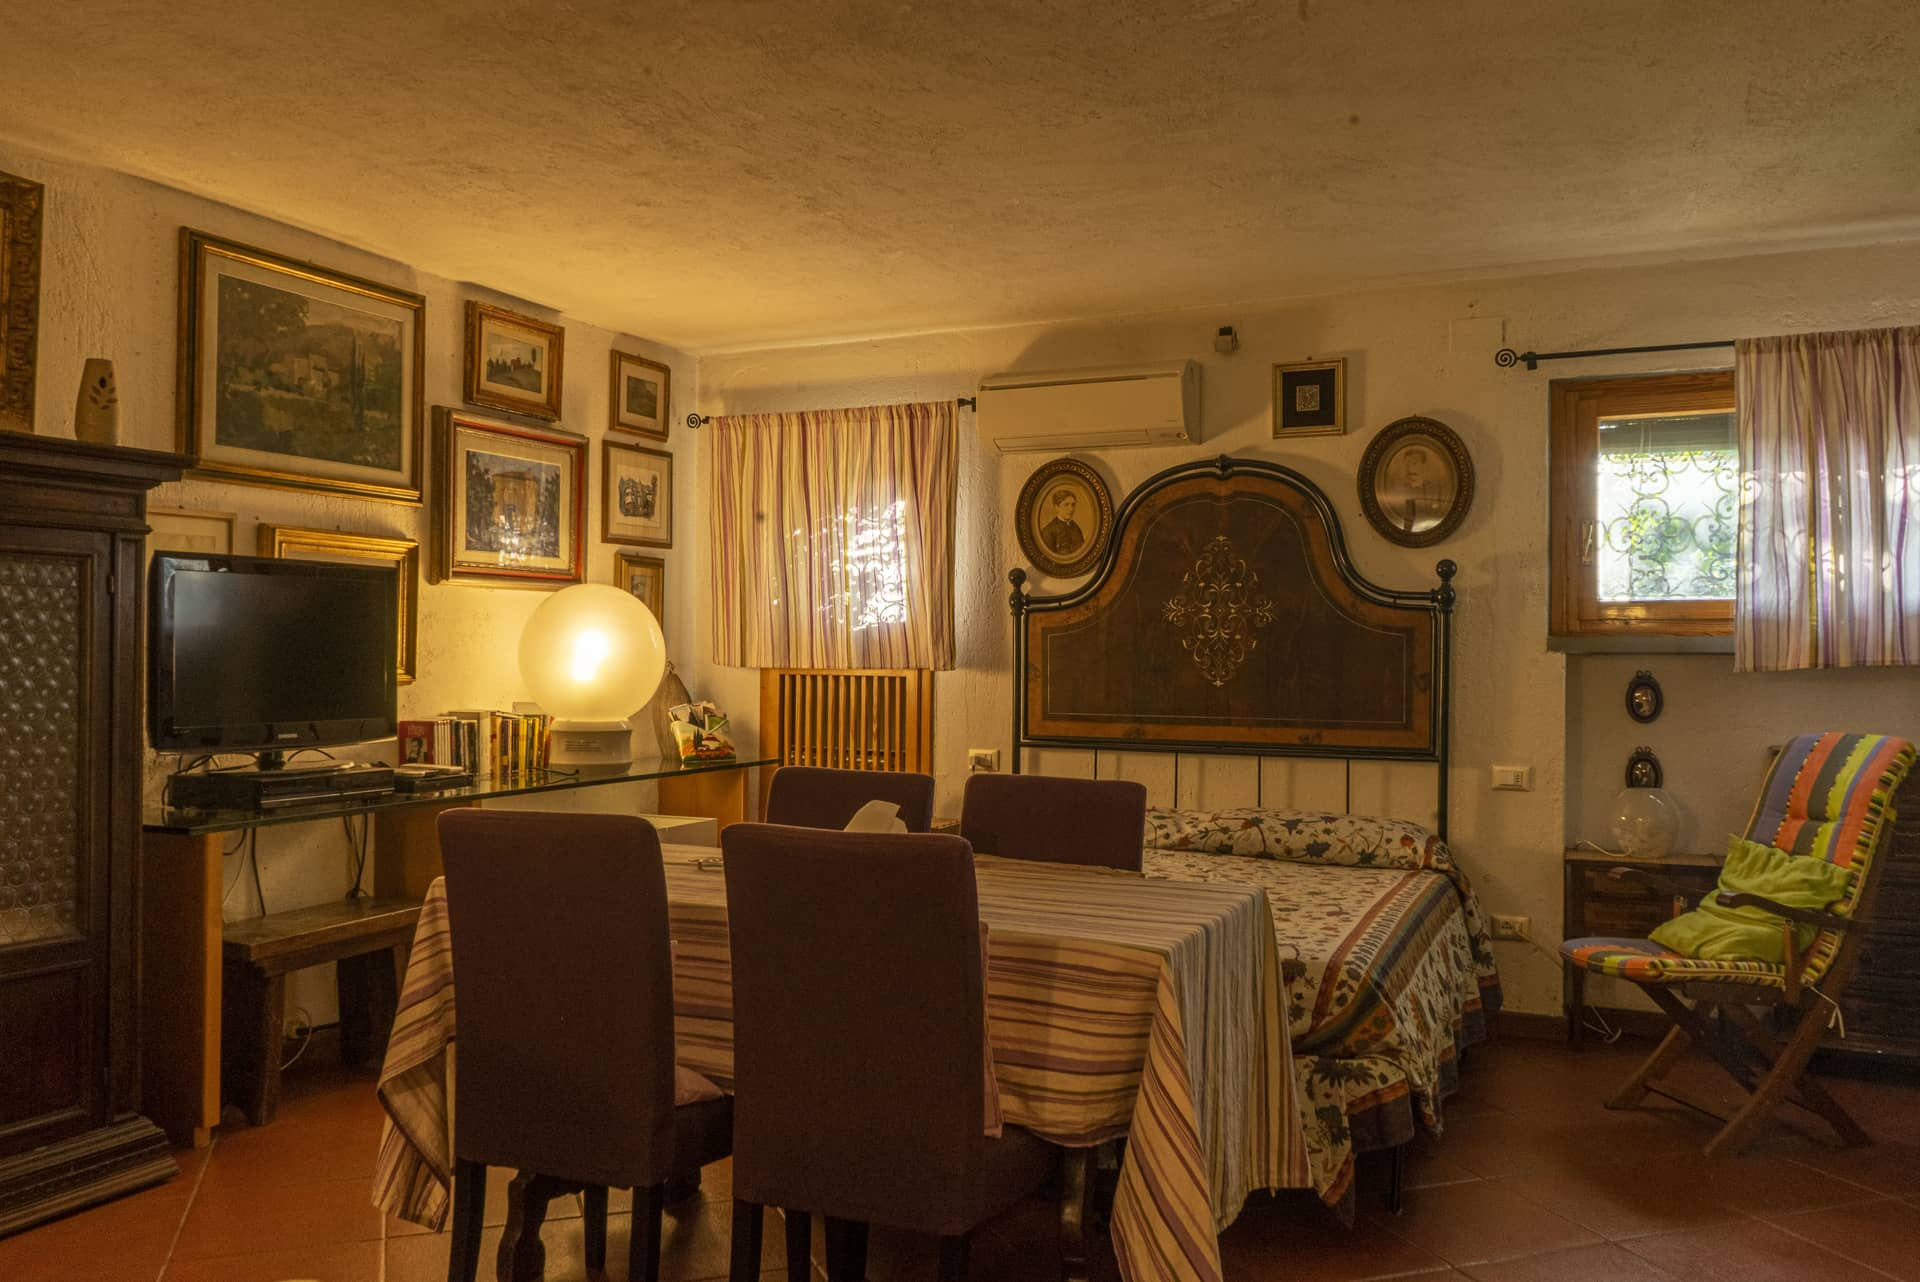 B&B Dolce Miele Structure - Bagno a Ripoli Rooms - Tuscany